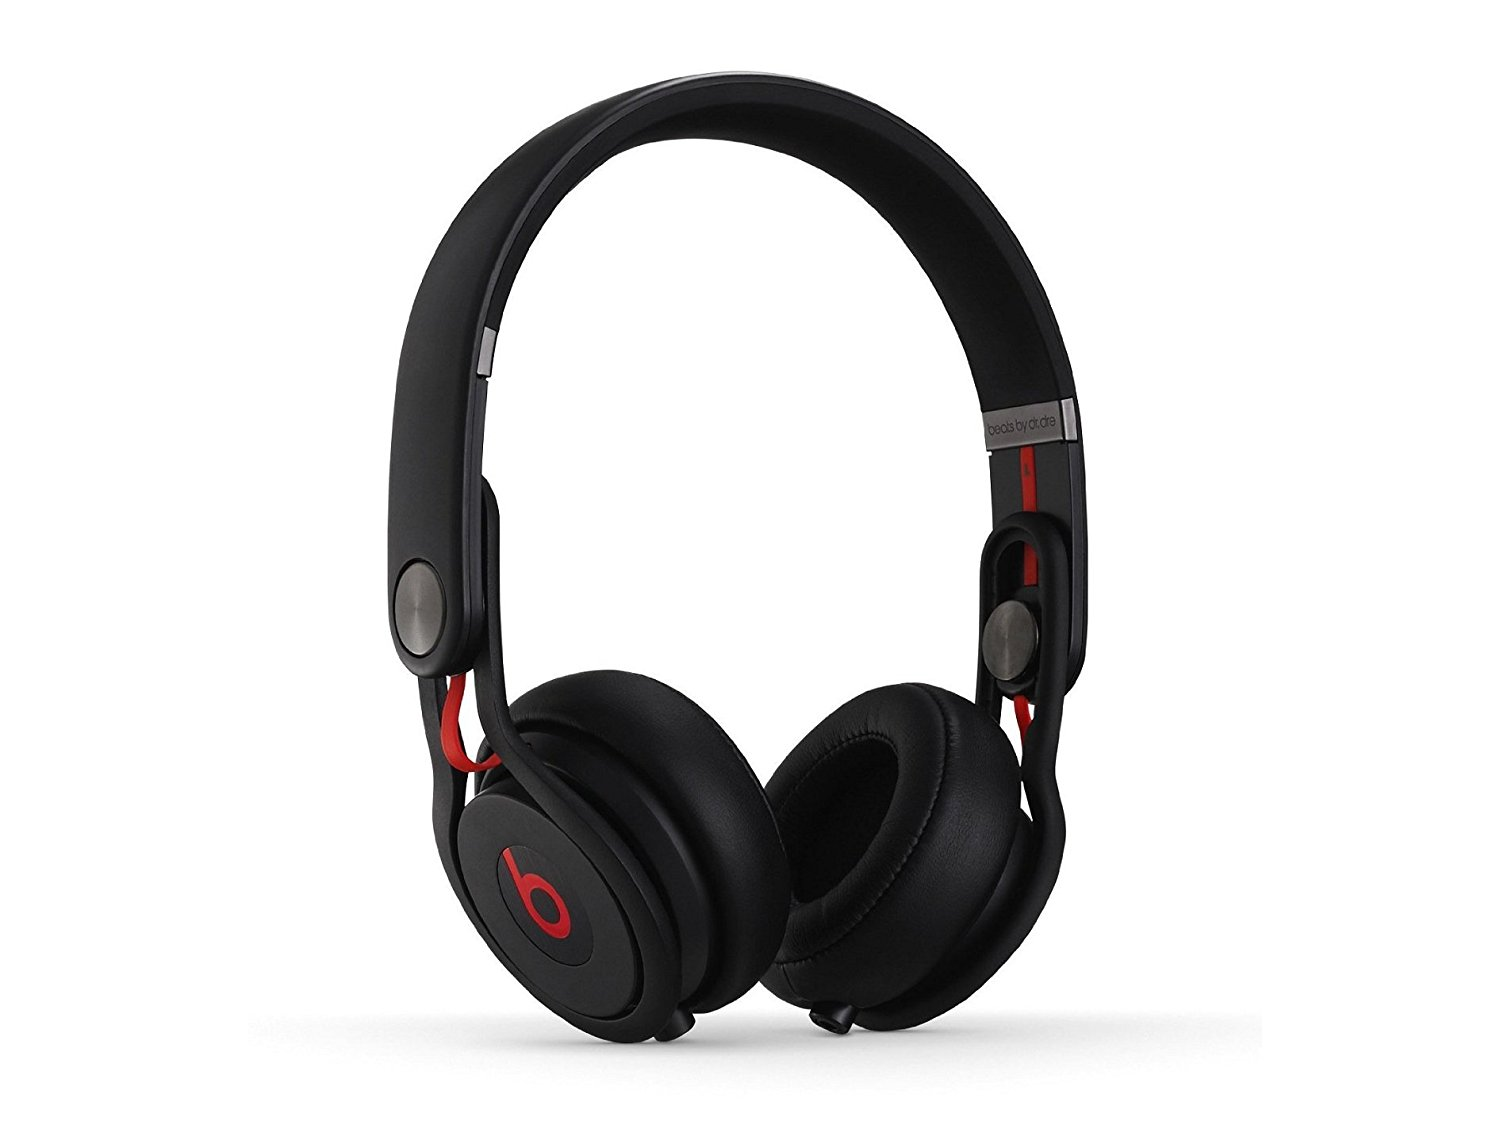 Beats Mixr Wired On-Ear Headphone - Black